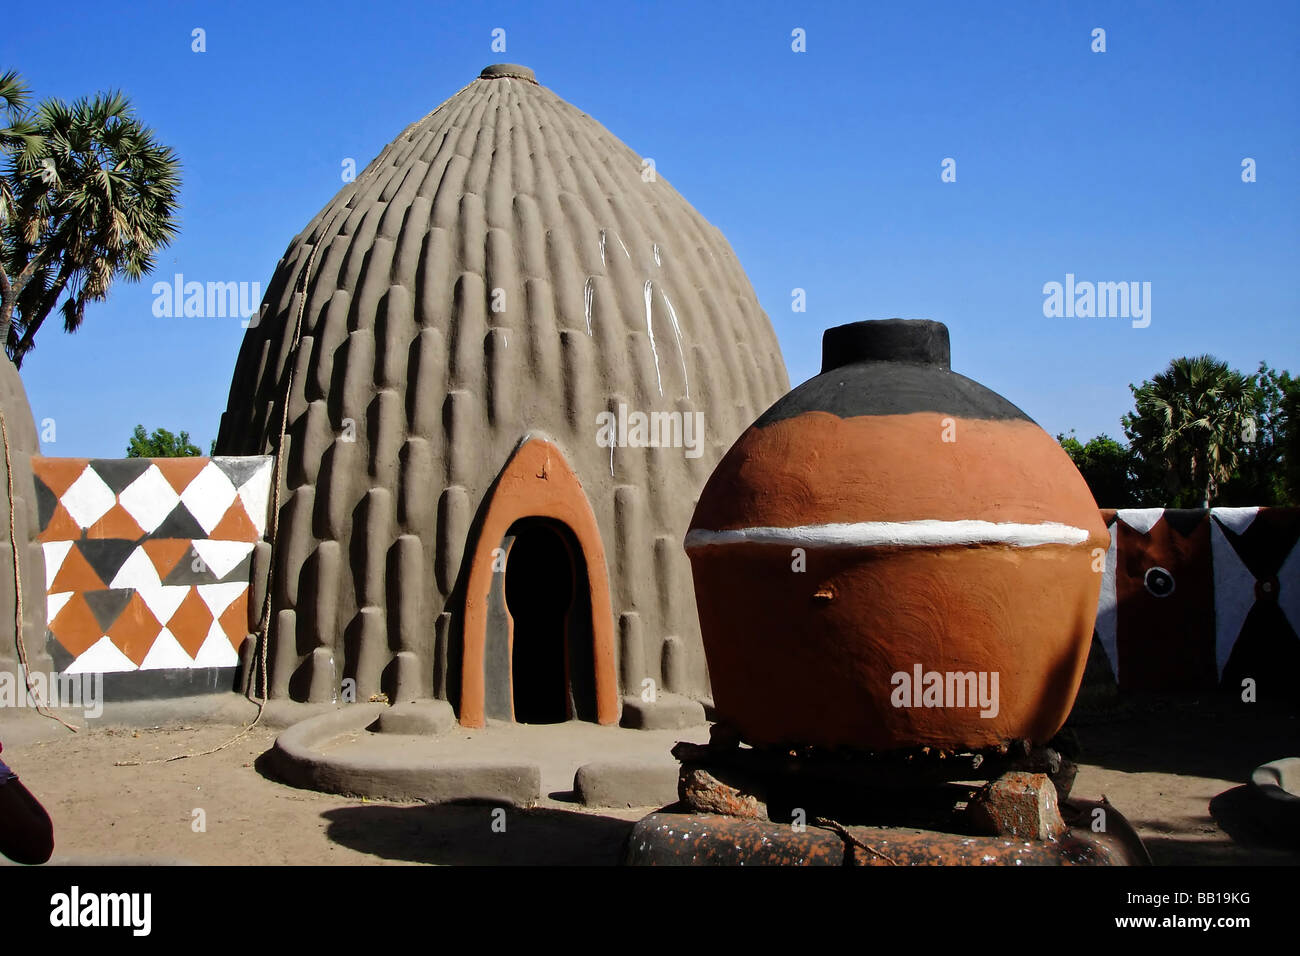 Cameroon Pouss Traditional Obus Shaped Houses In